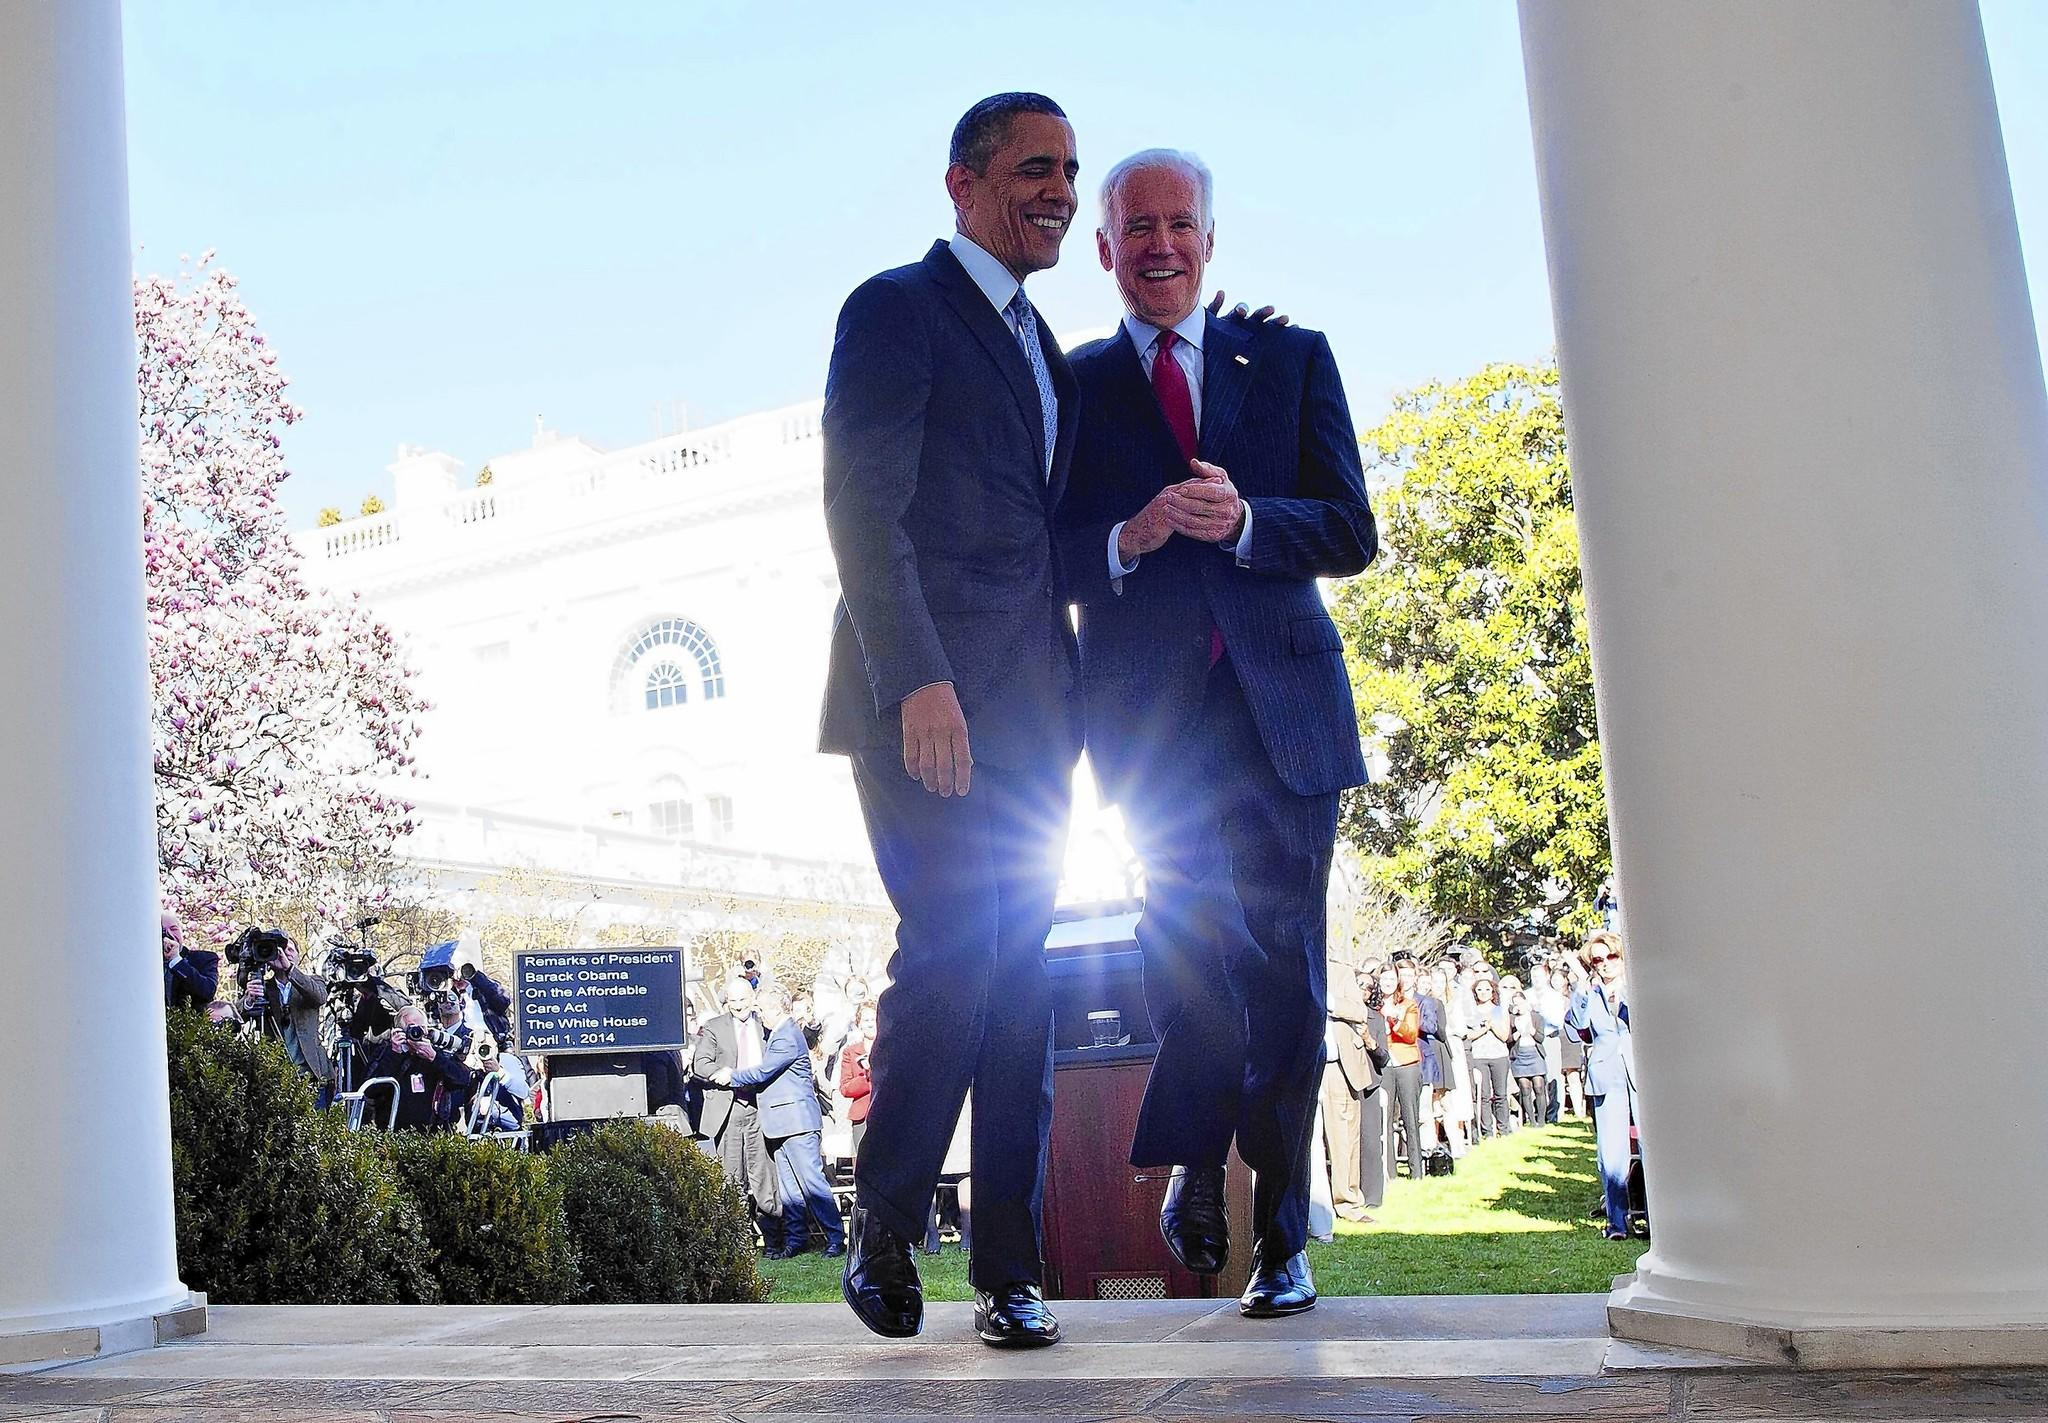 """President Obama walks back to the Oval Office with Vice President Joe Biden after delivering a statement on the Affordable Care Act at the White House Rose Garden. """"This law is doing what it's supposed to do,"""" Obama said, """"all of which makes the lengths to which critics have gone to scare people or undermine the law or try to repeal the law without offering any plausible alternative so hard to understand."""""""